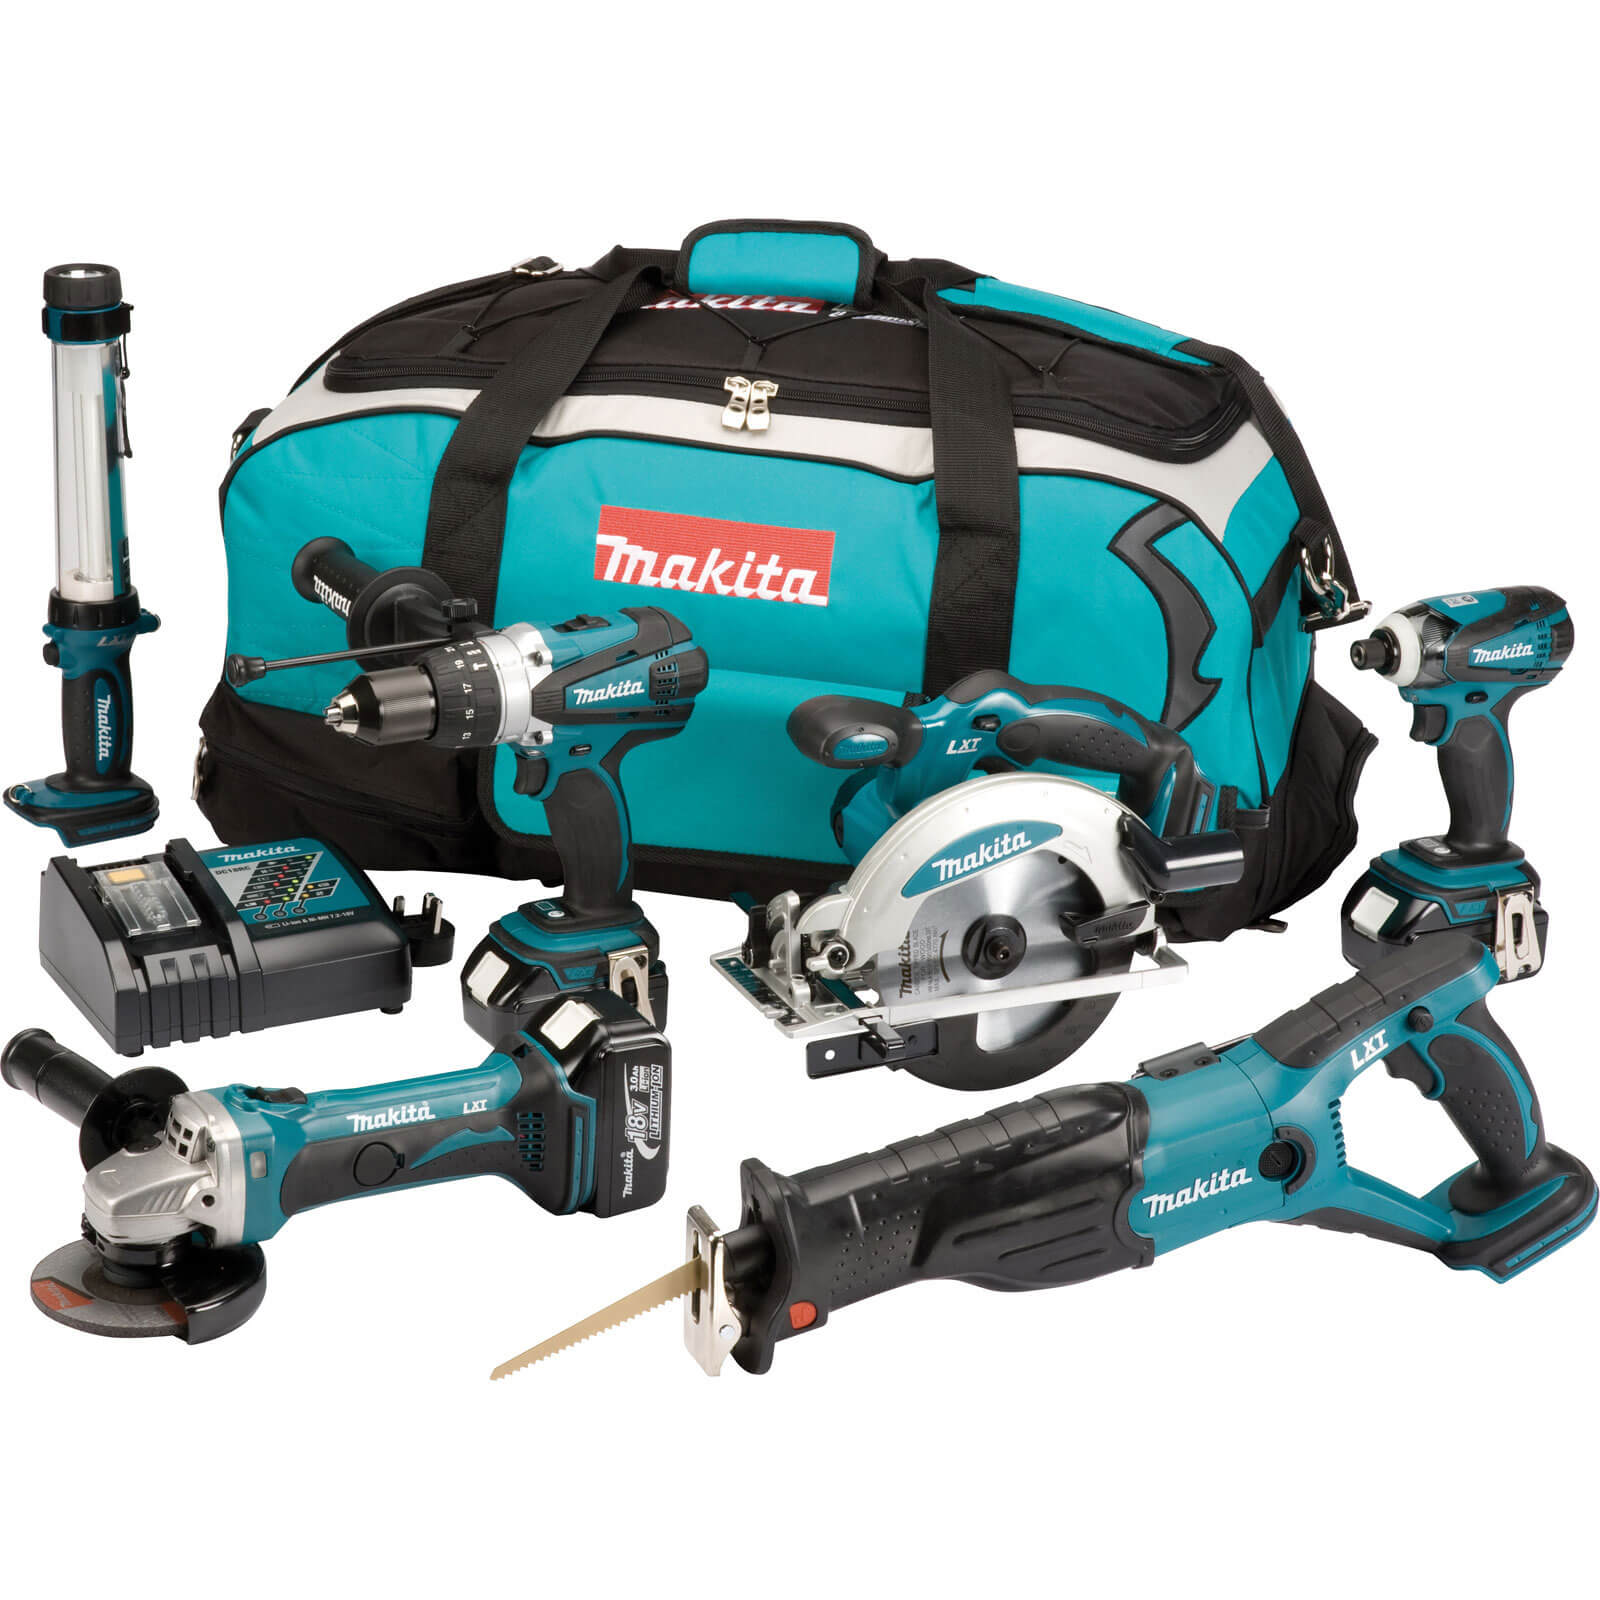 Image of Makita DLX6000PM 18v Cordless 6 Piece Power Tool Kit with 3 Lithium Ion Batteries 4ah